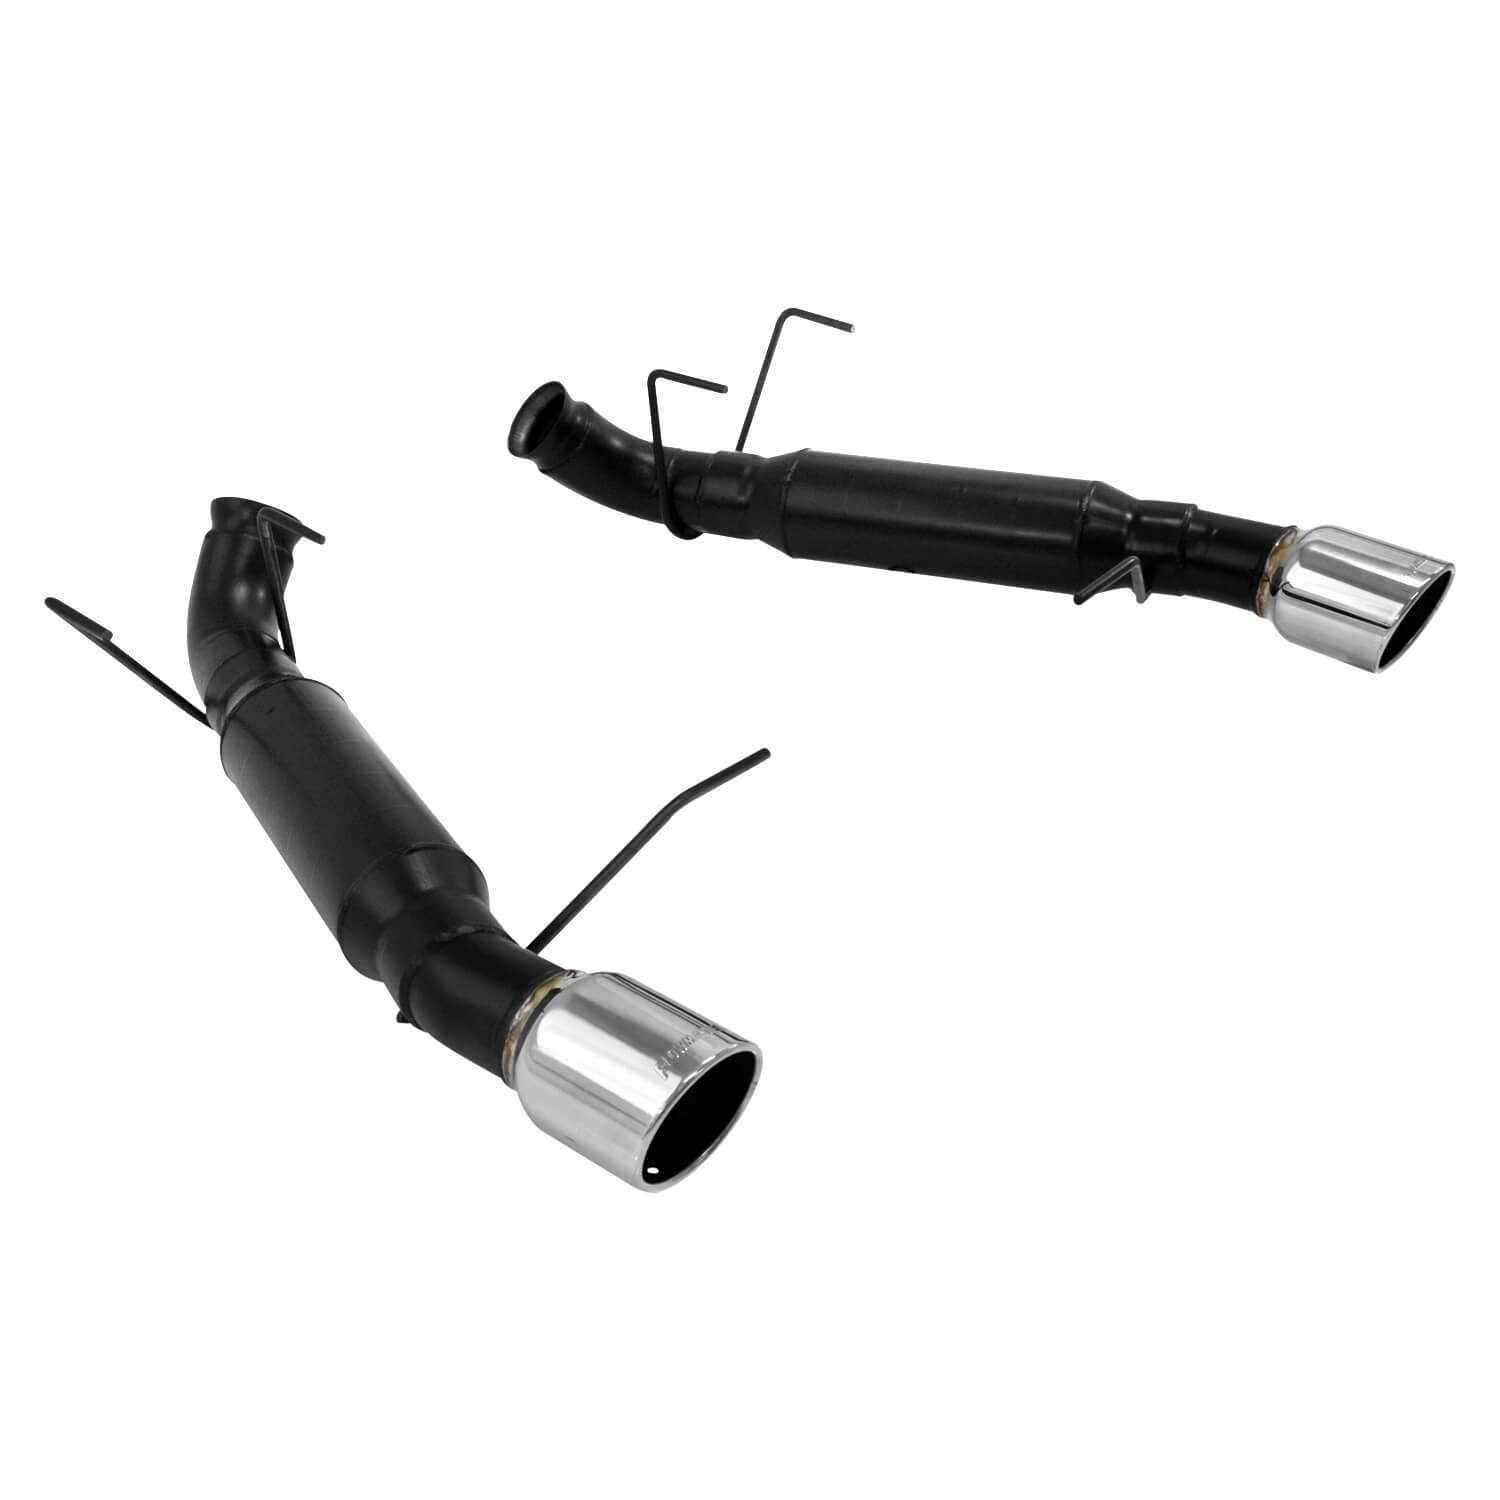 817592 Flowmaster Outlaw Series™ Axle Back Exhaust System